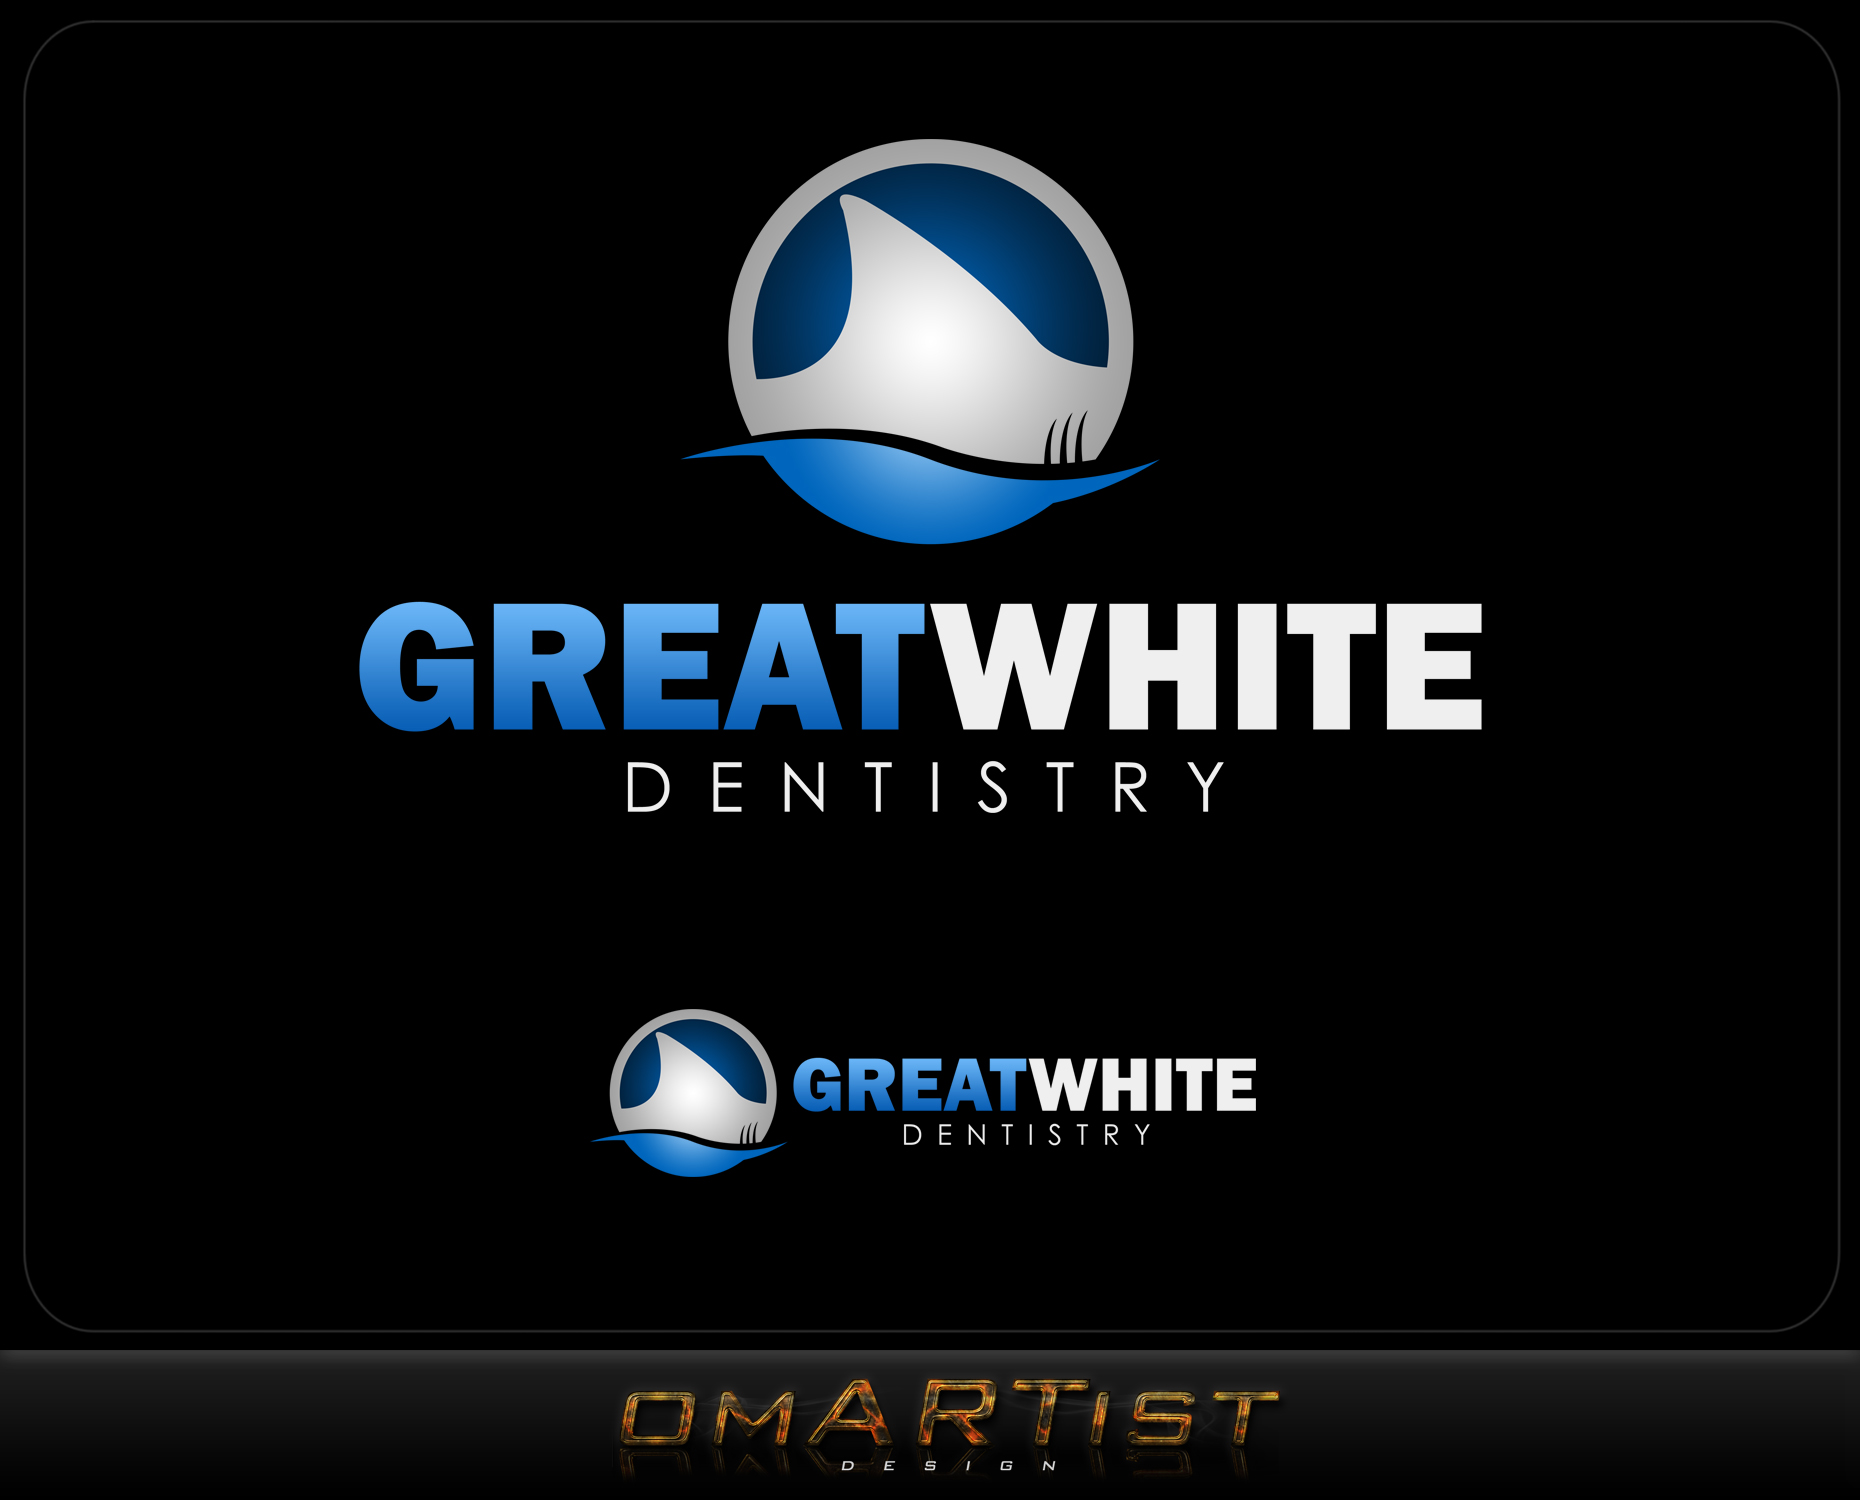 Logo Design by omARTist - Entry No. 118 in the Logo Design Contest Logo Design for Great White Dentistry.